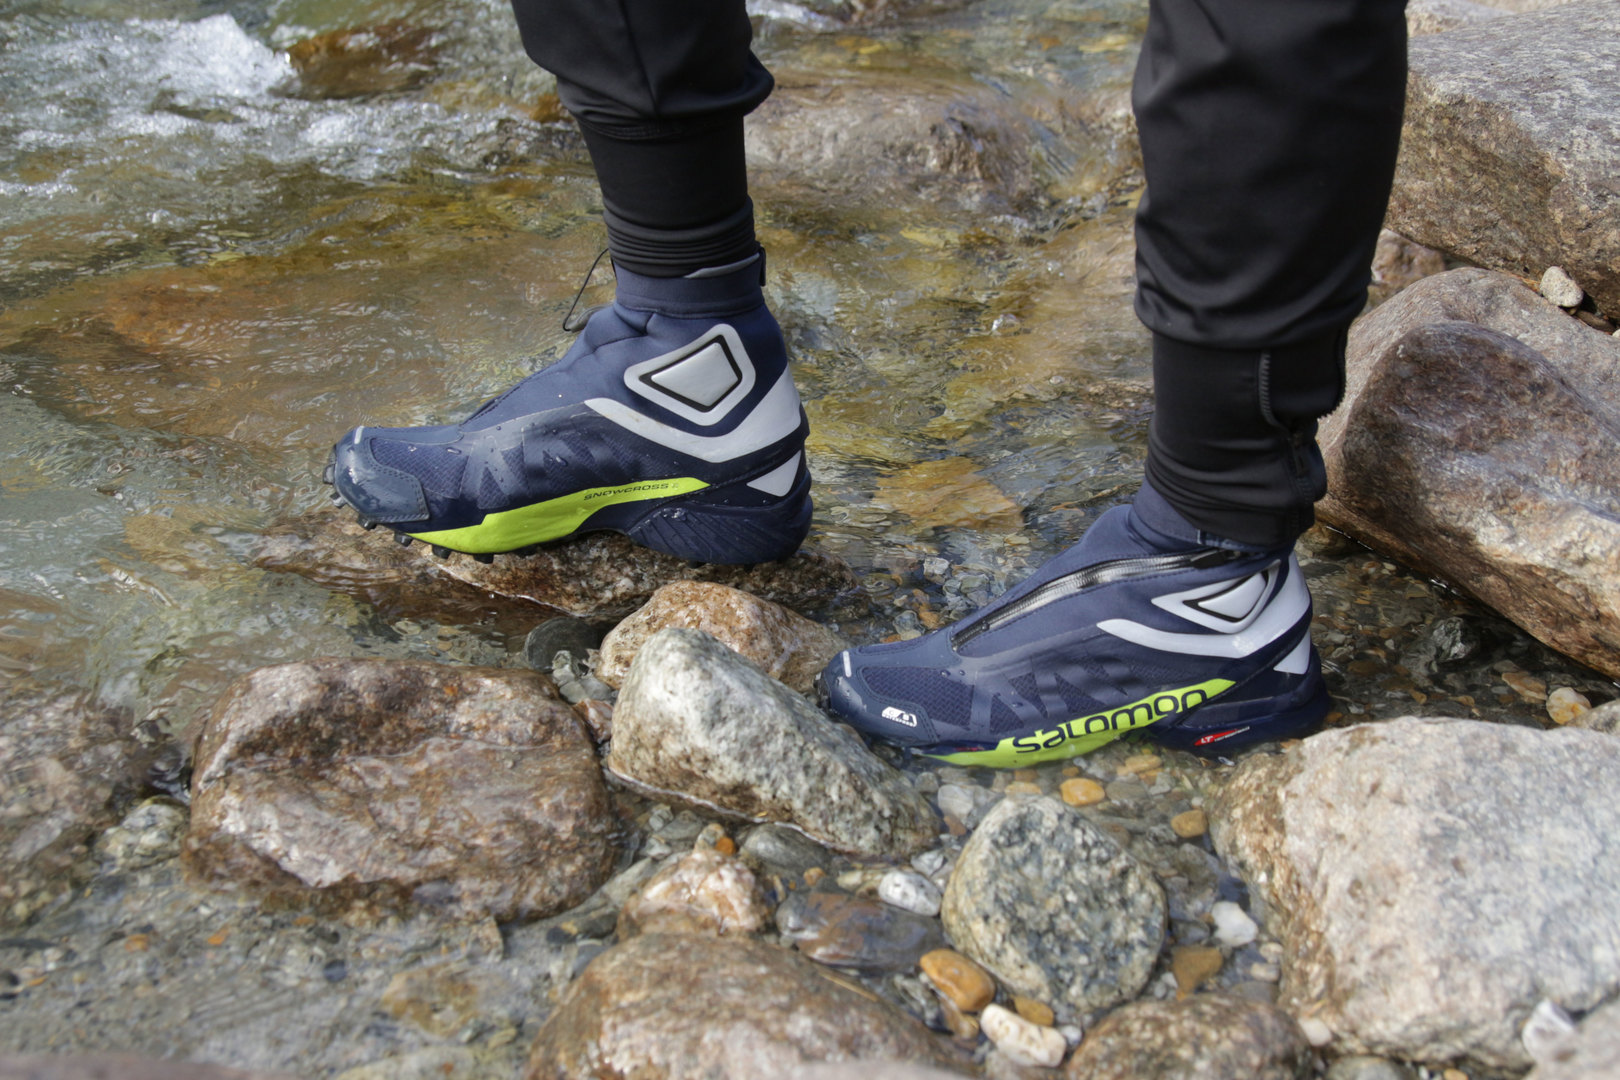 wholesale price amazing selection super quality Acquista scarpe mtb salomon - OFF69% sconti